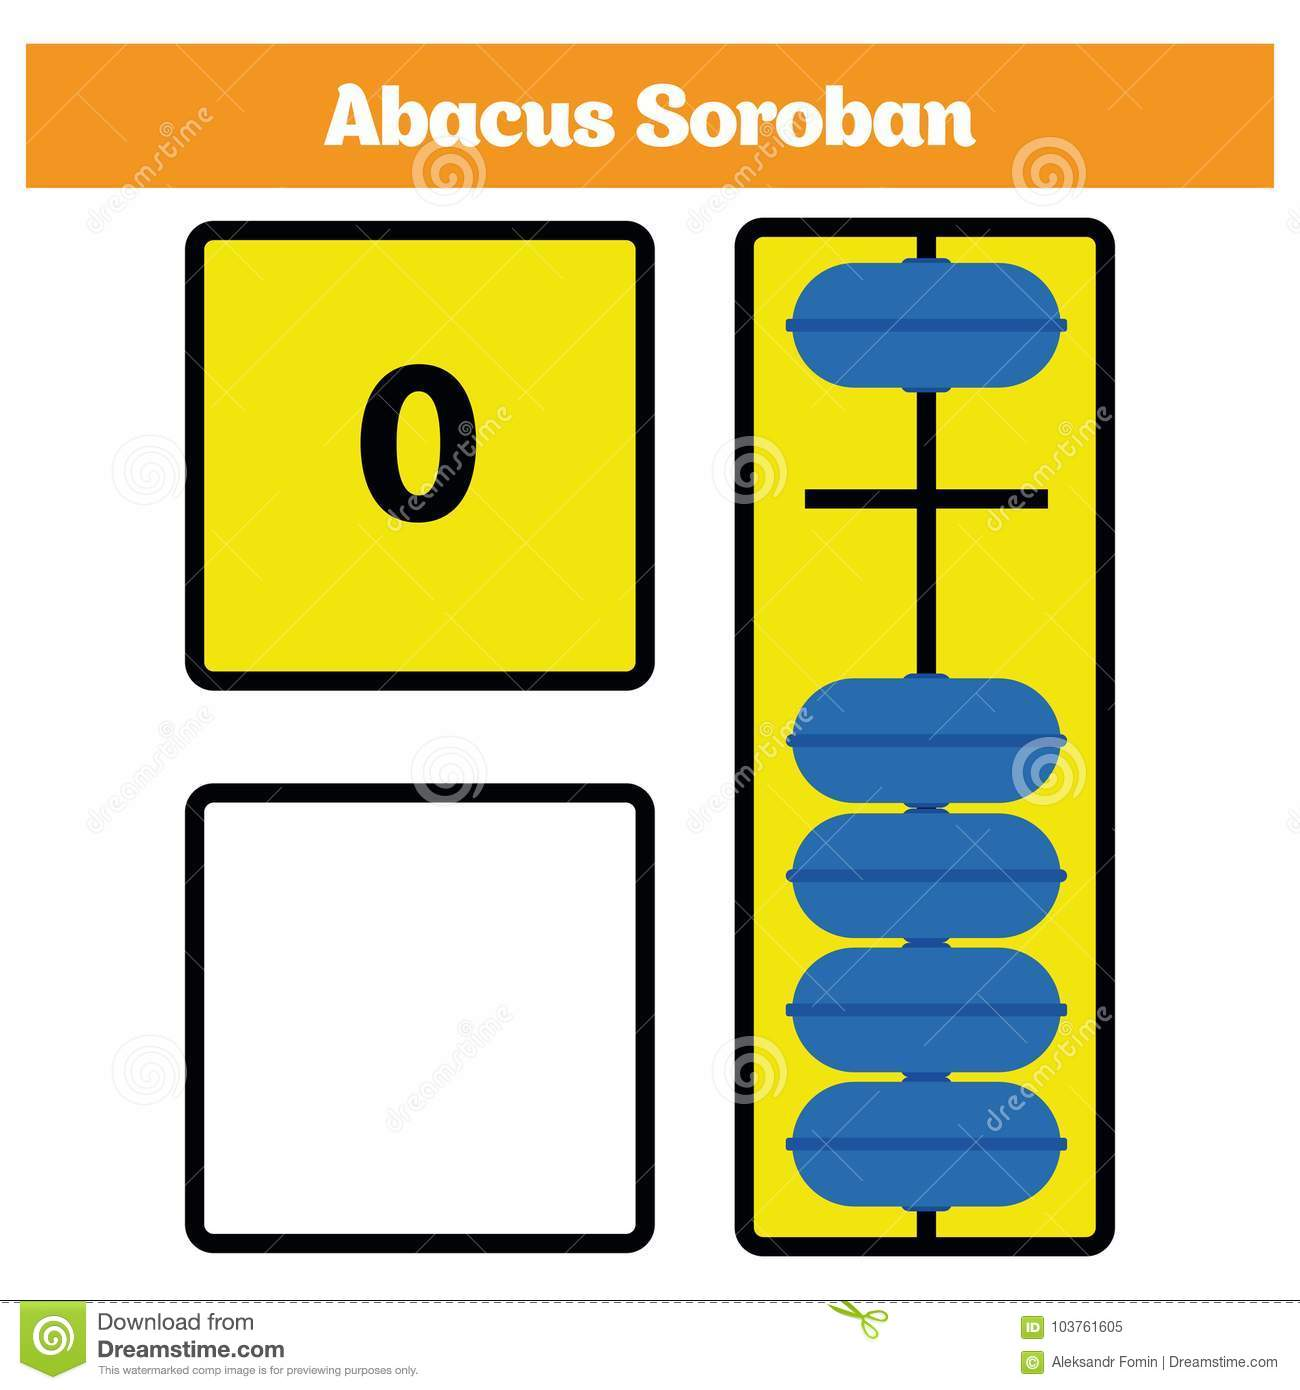 abacus soroban kids learn numbers with abacus math worksheet for  abacus soroban kids learn numbers with abacus math worksheet for children  vector illustration